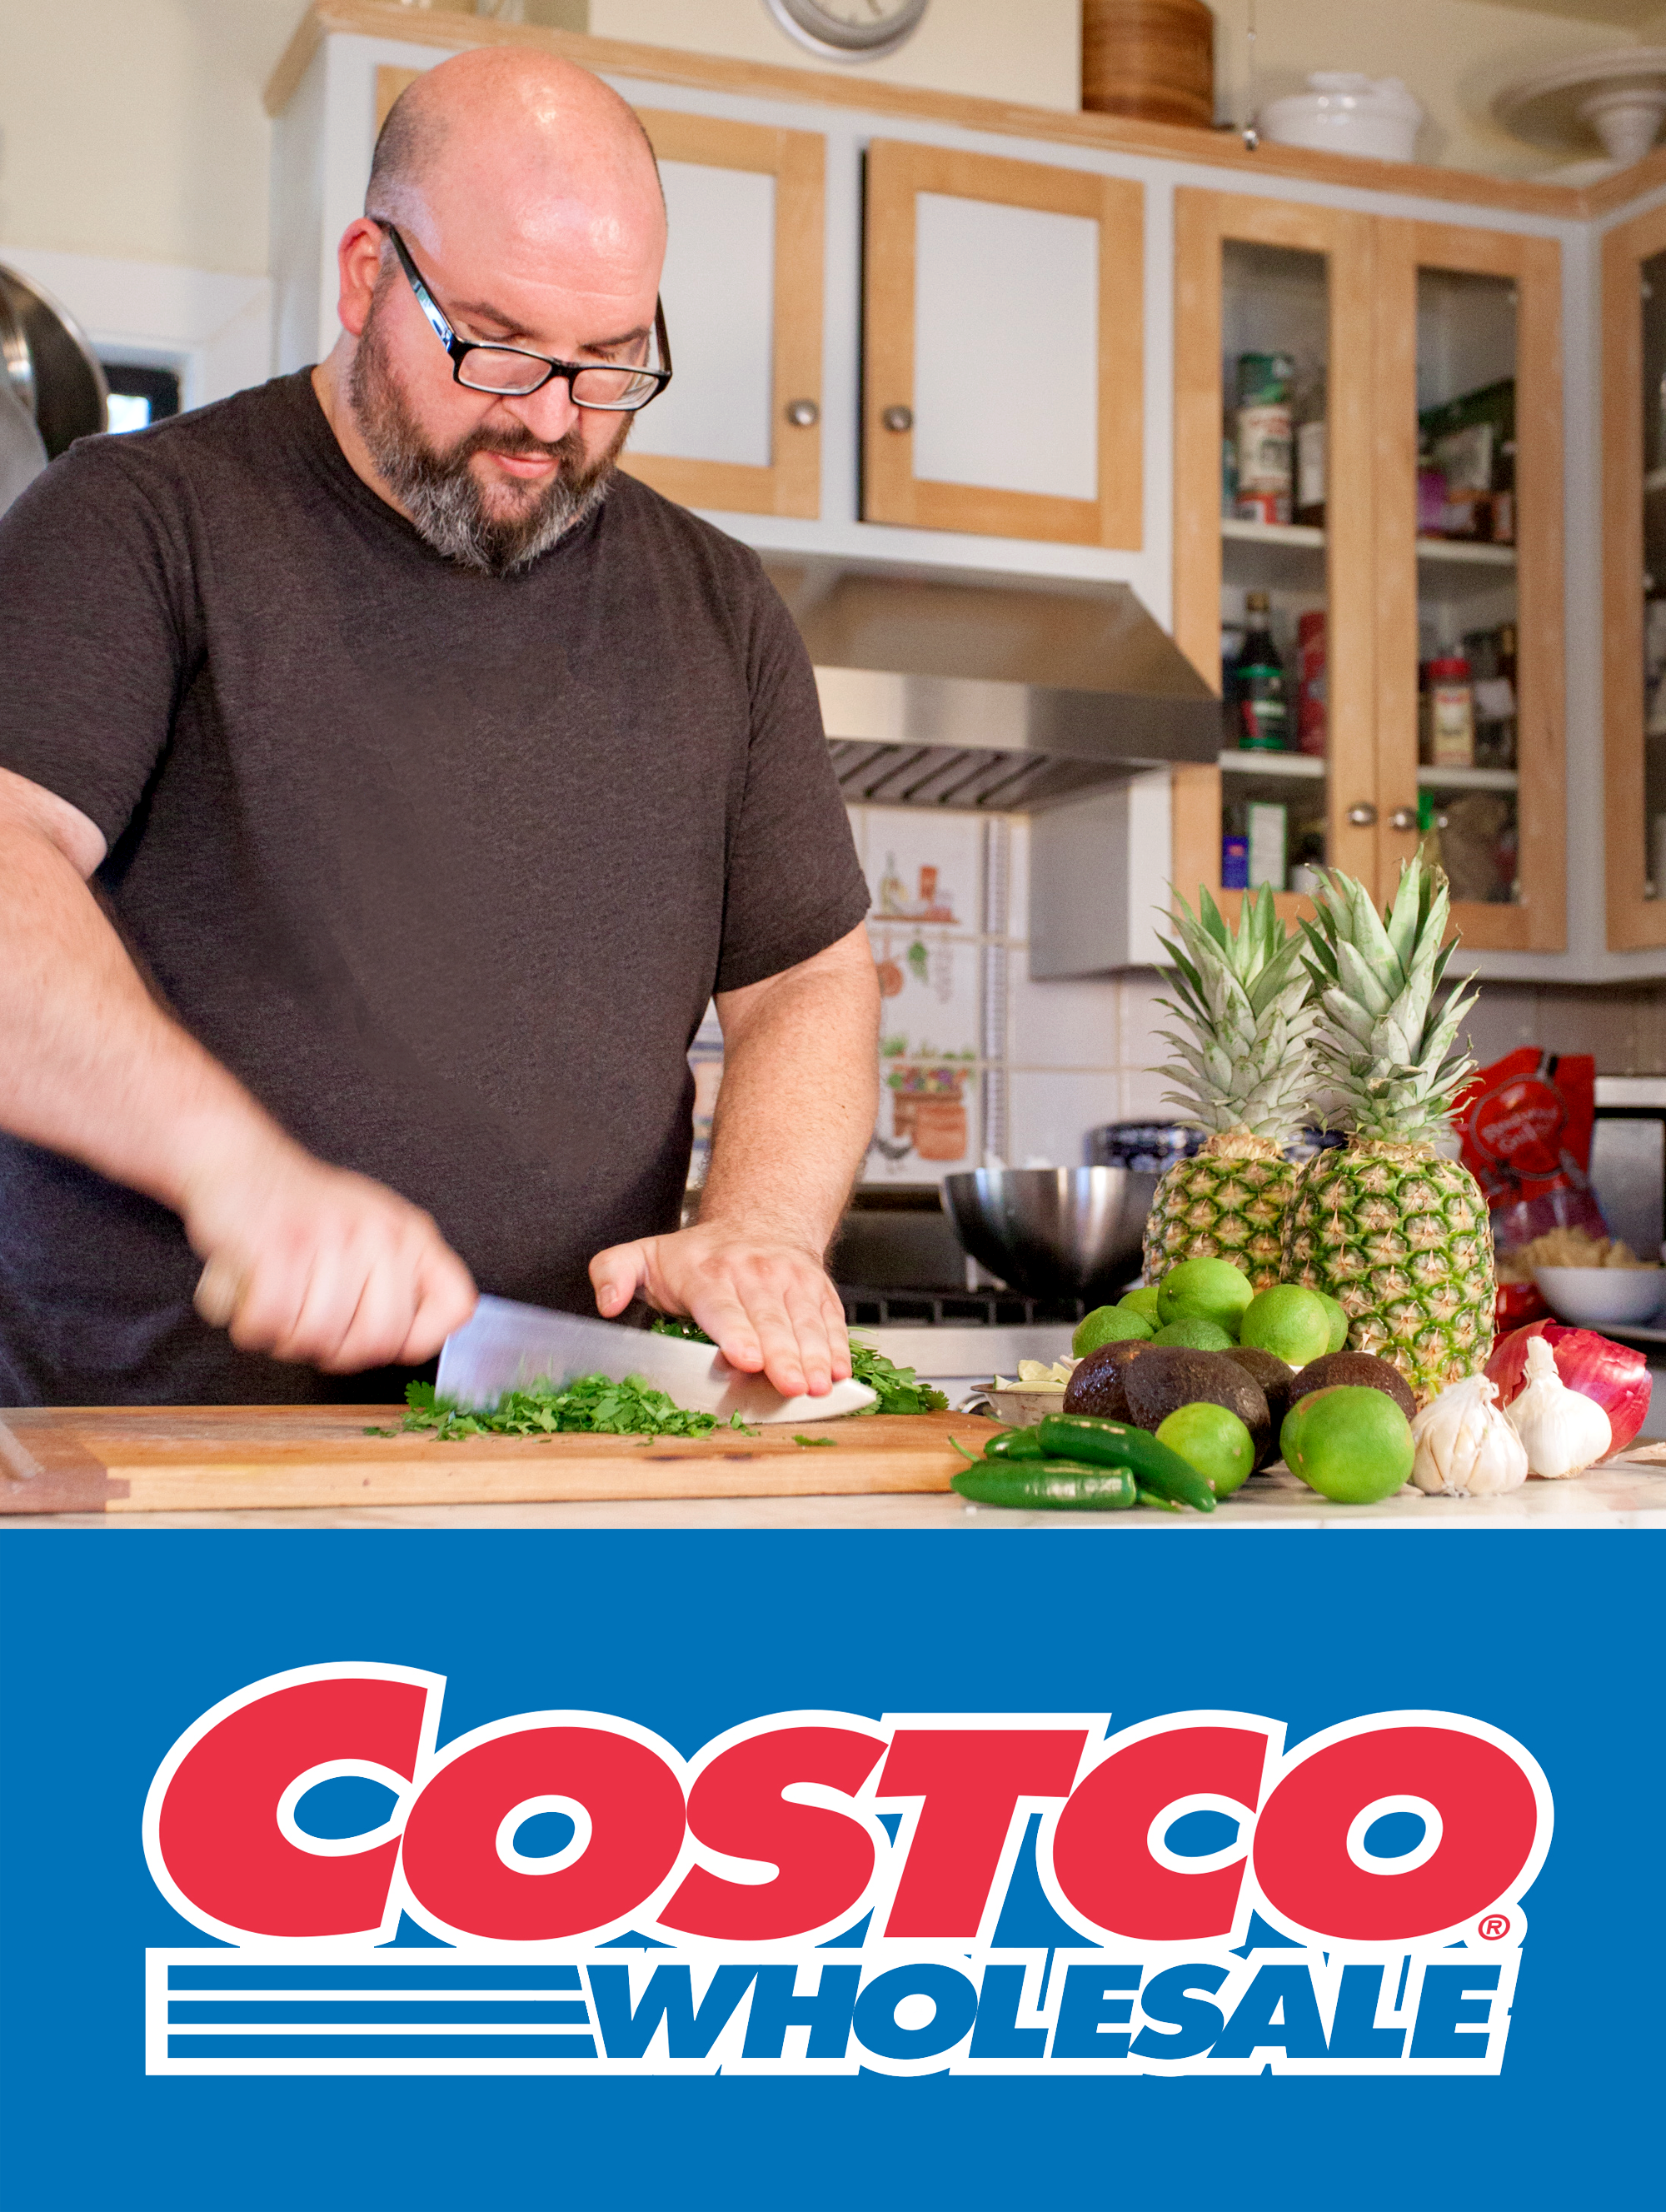 Cooking with Costco on Facebook Live